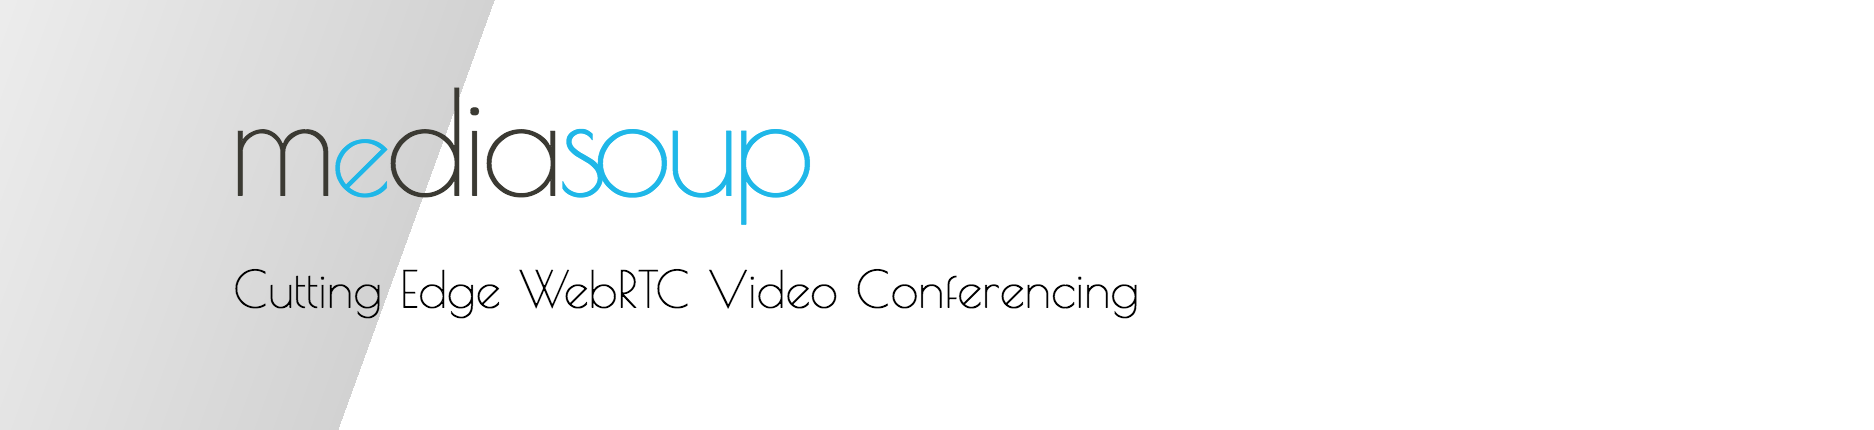 GitHub - versatica/mediasoup: Cutting Edge WebRTC Video Conferencing